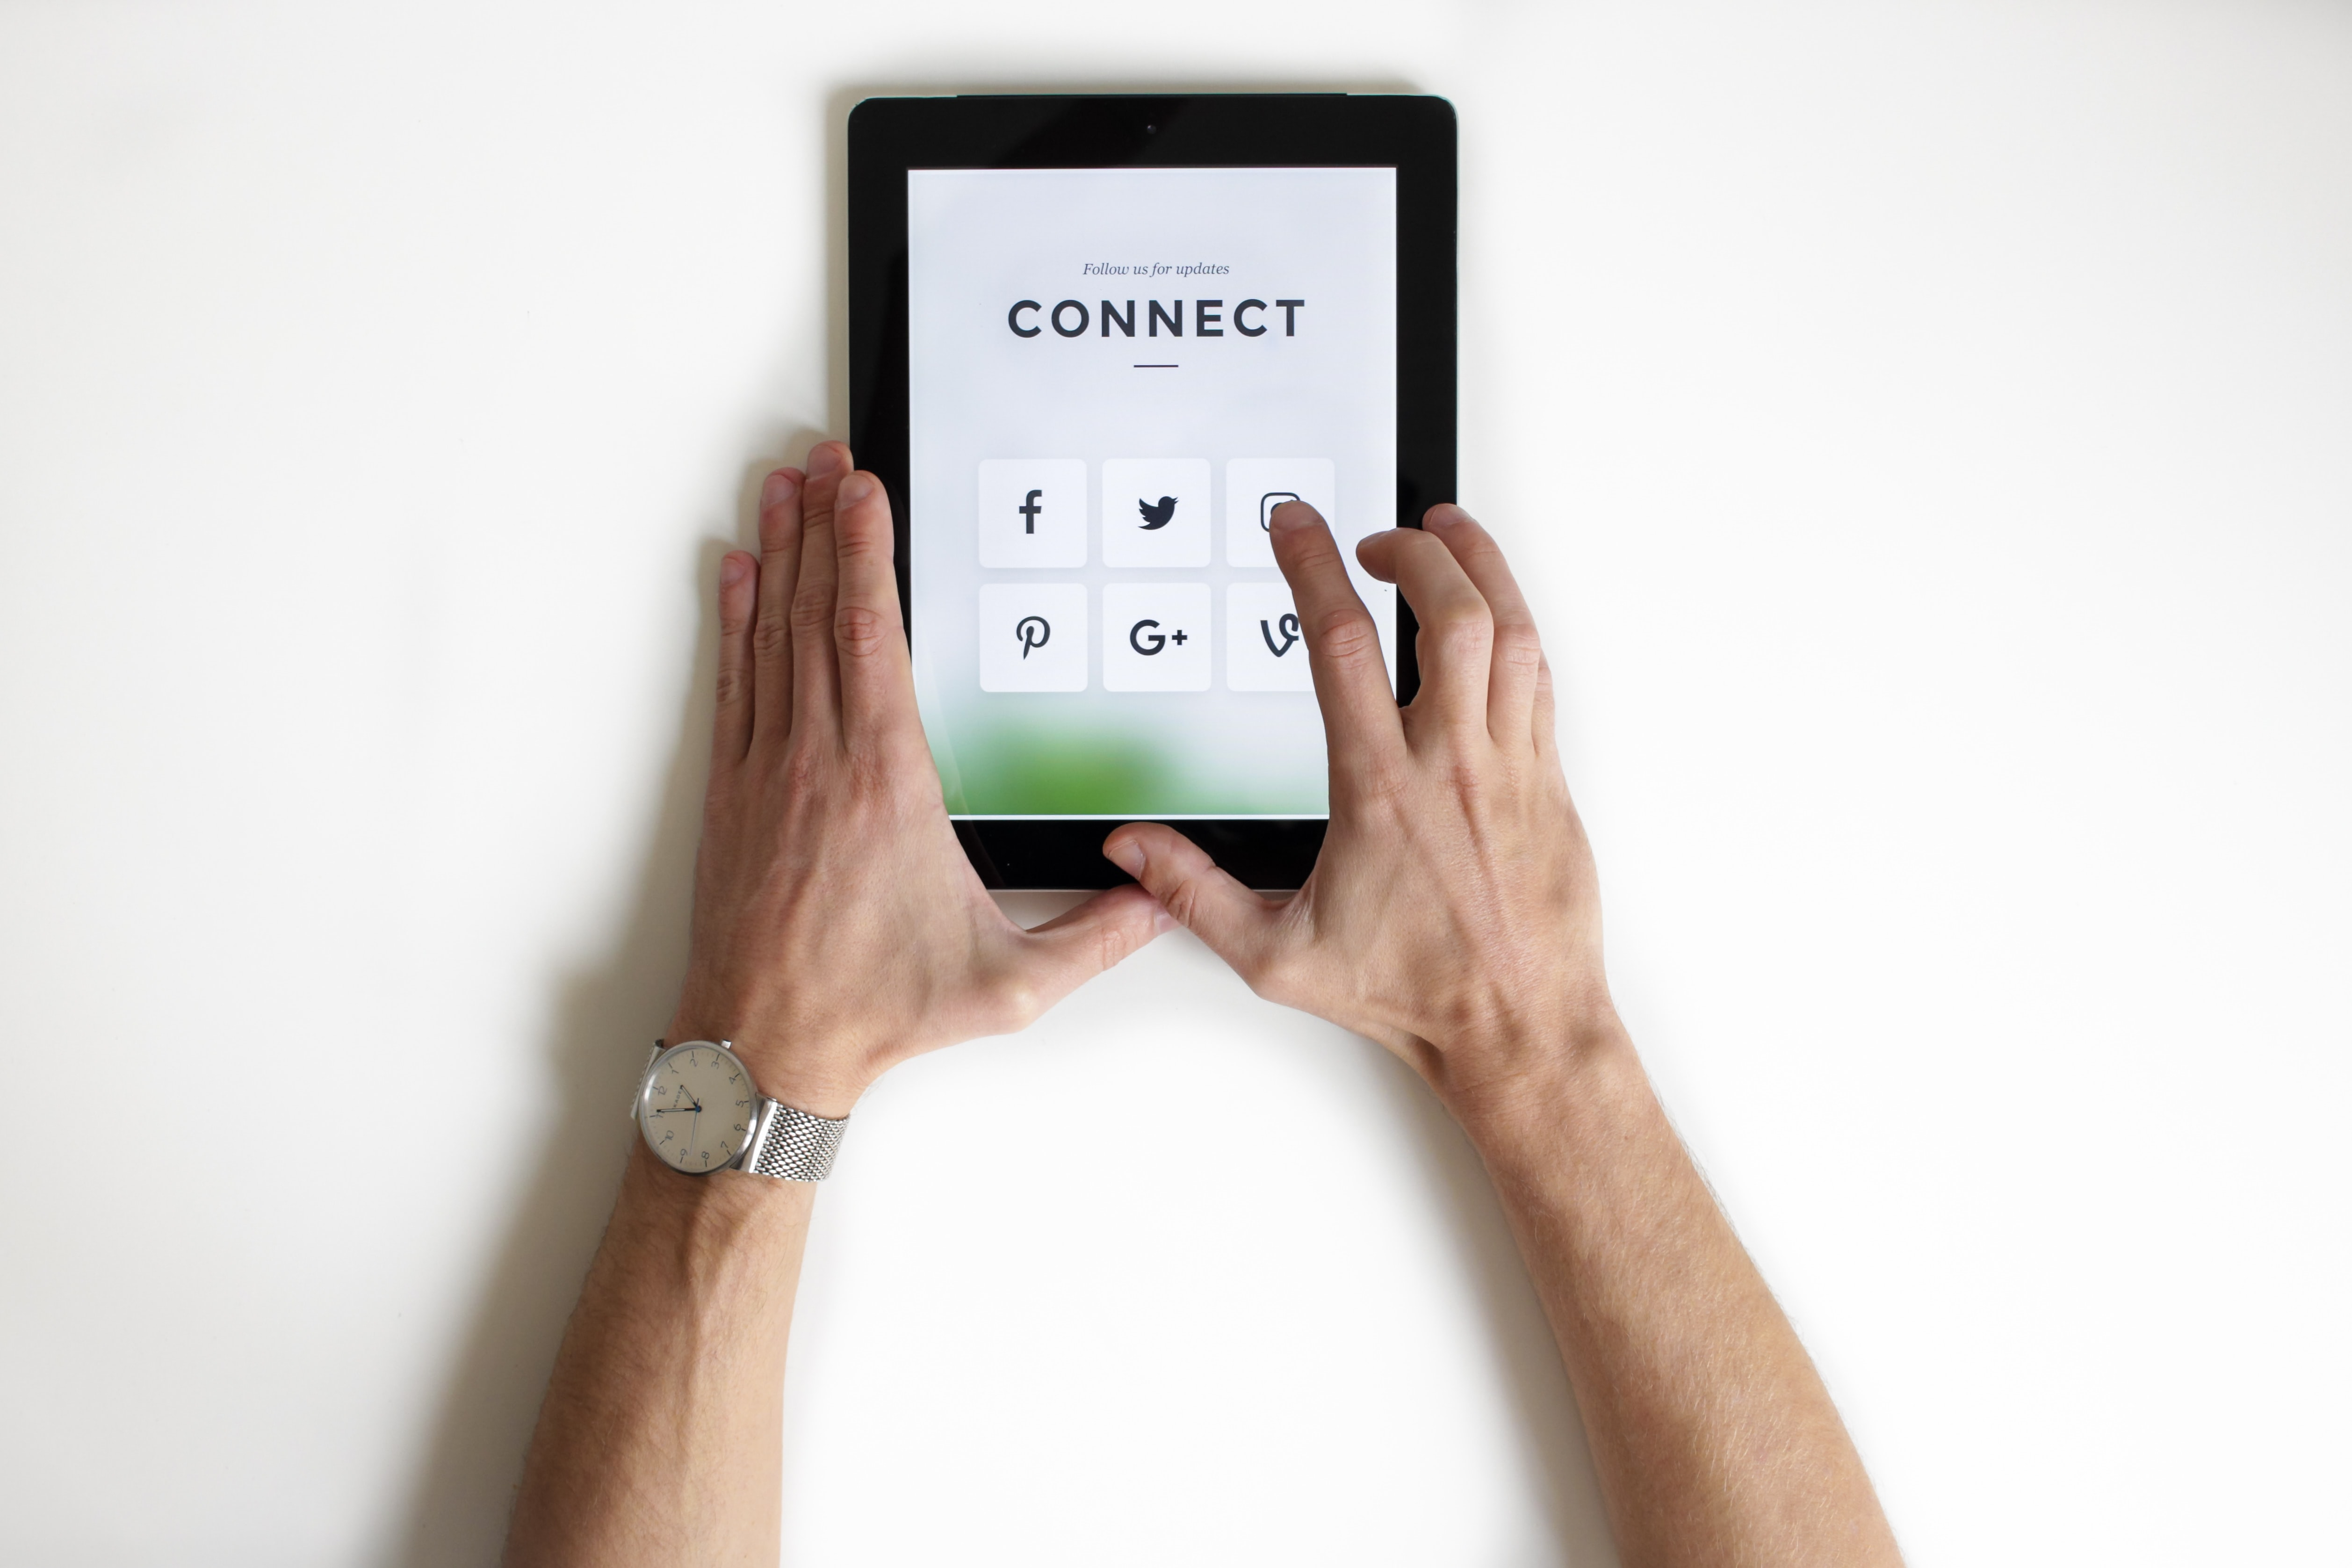 How to Develop a Social Media Marketing Strategy if You're Beginner Written by Shareen Sharma